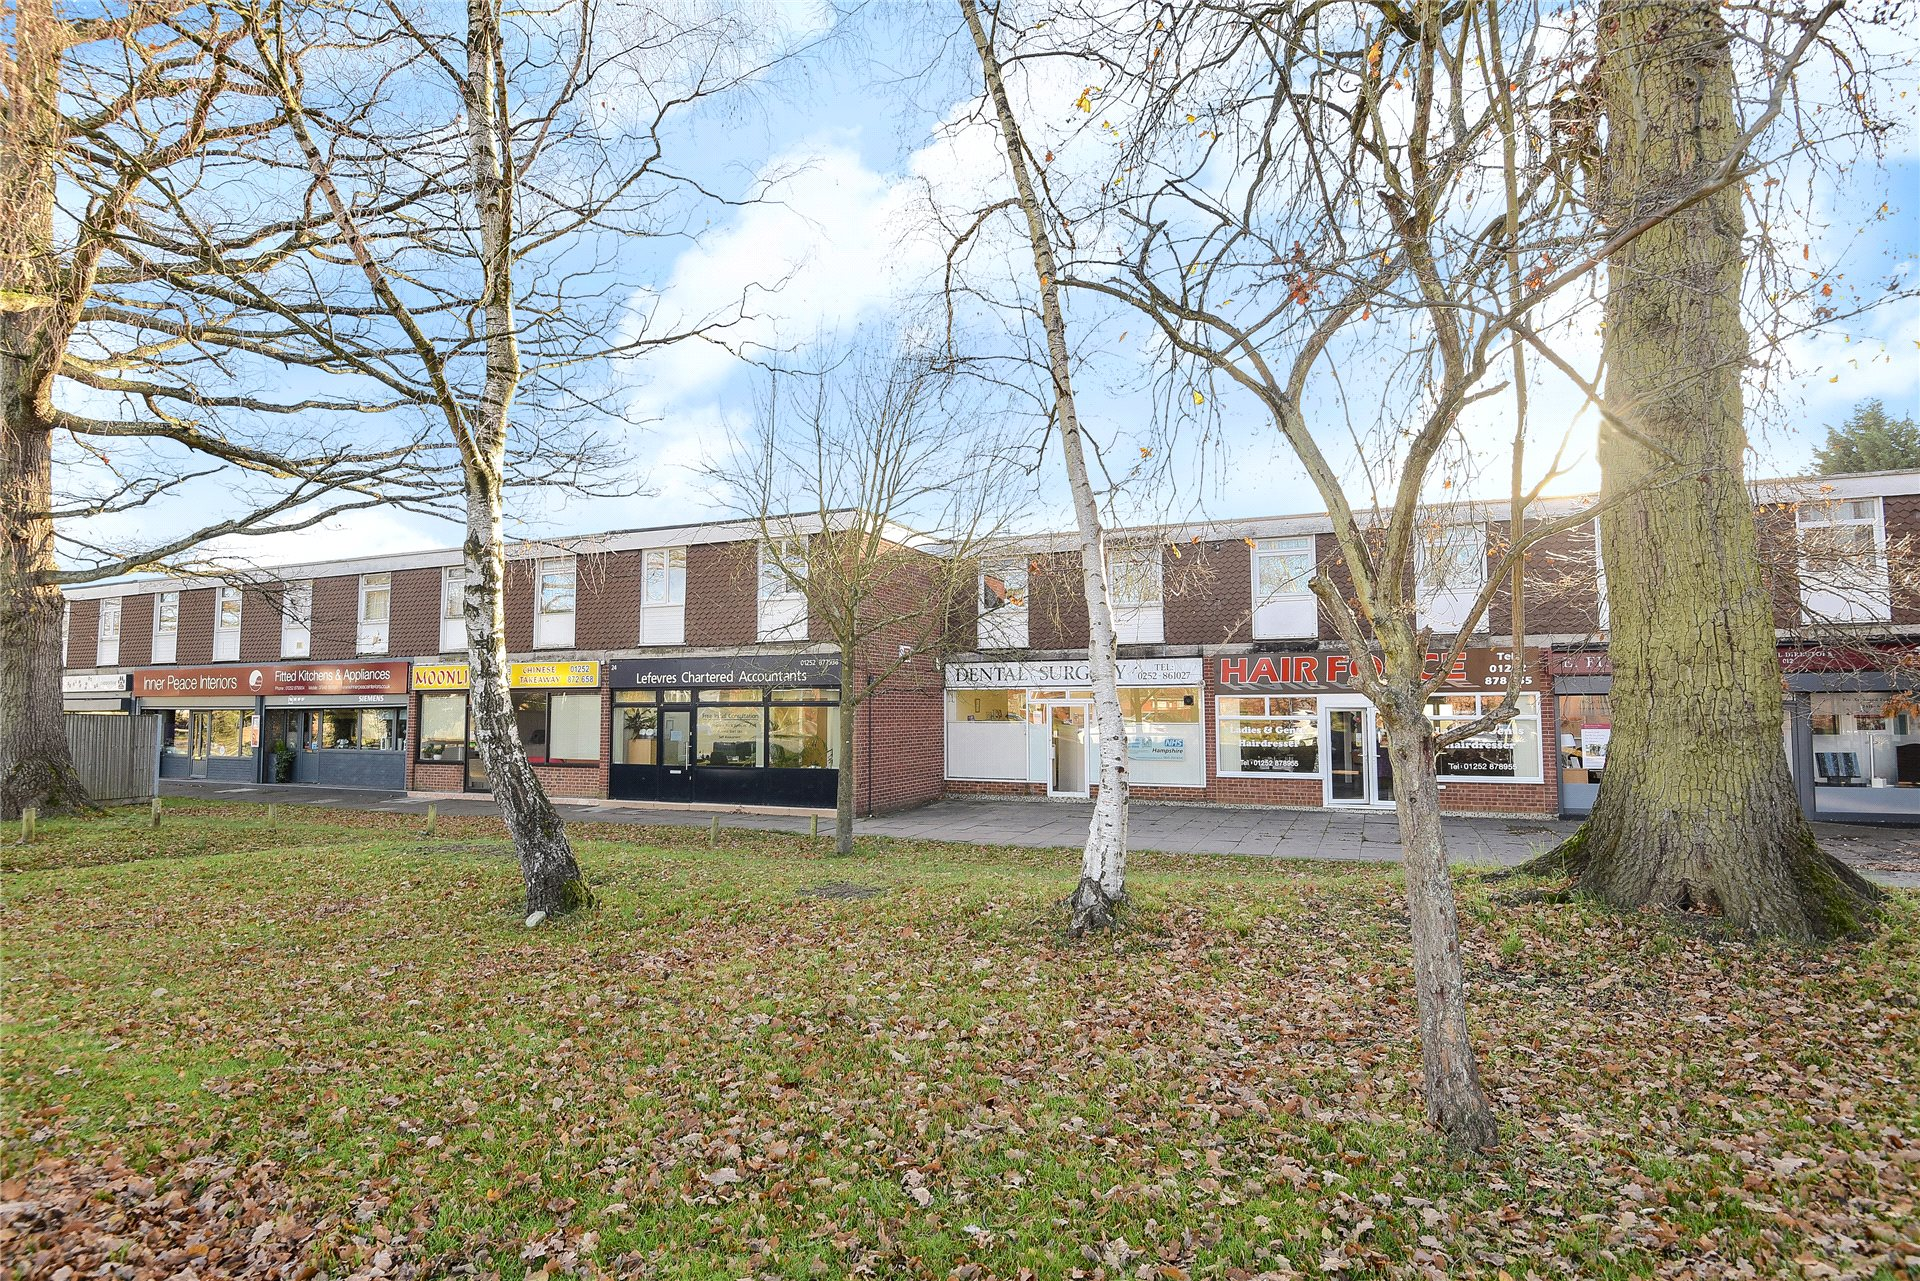 2 Bedrooms Apartment Flat for sale in Bell Lane, Blackwater, Camberley, GU17